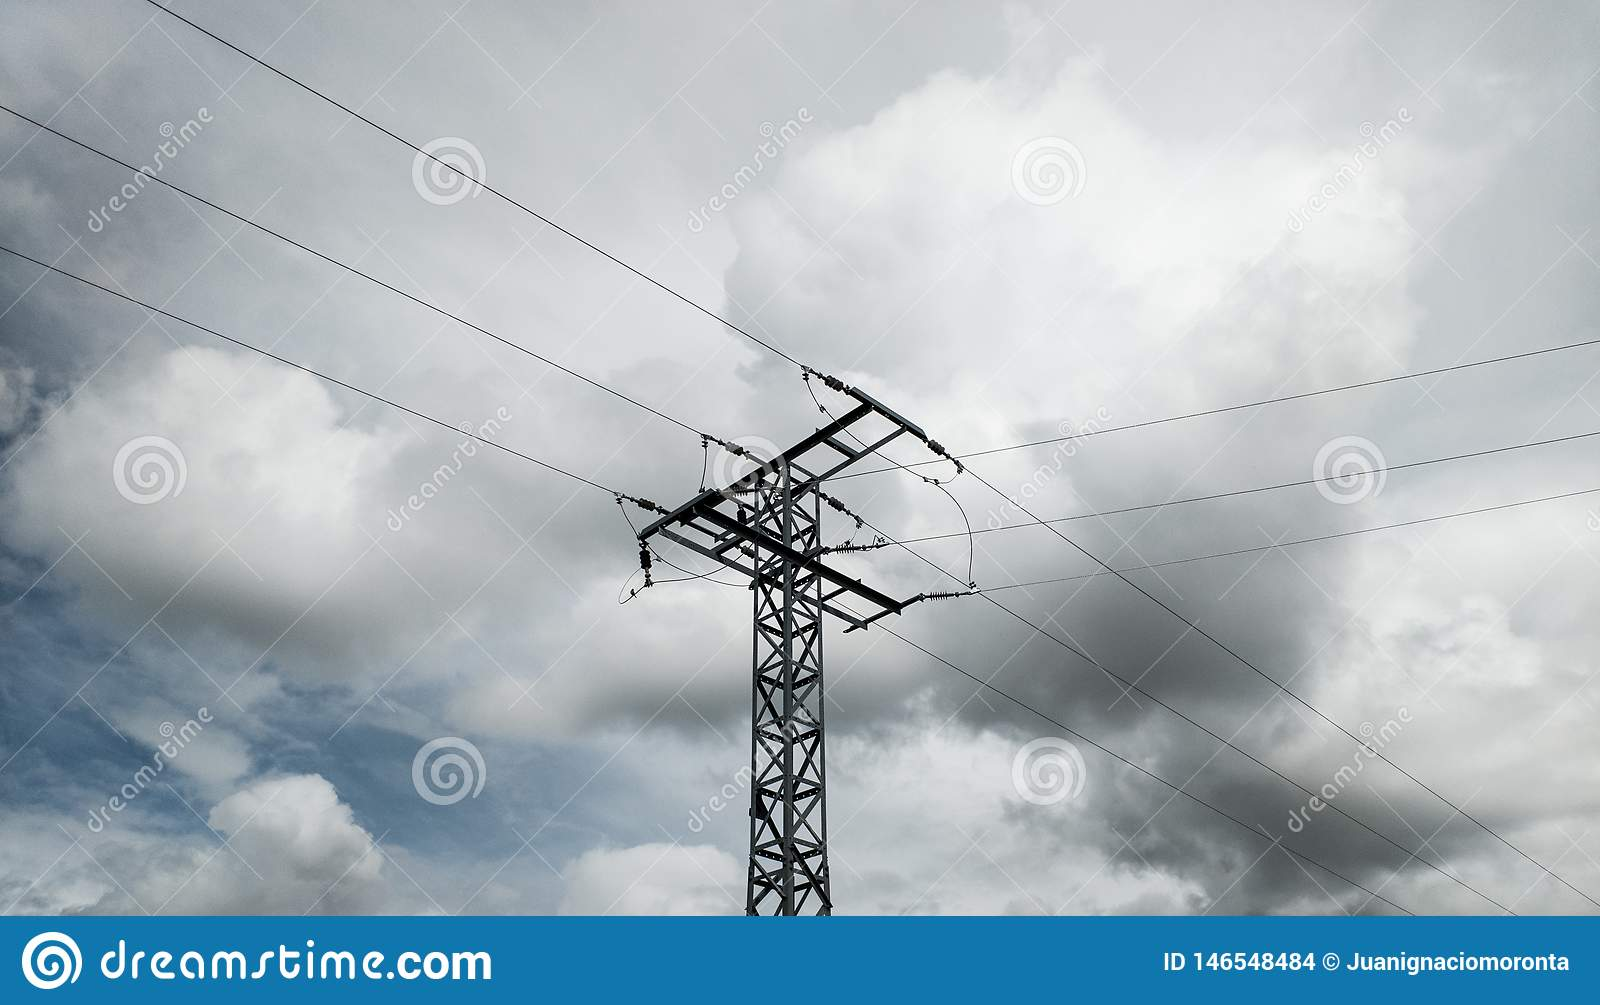 High-voltage tower in the middle